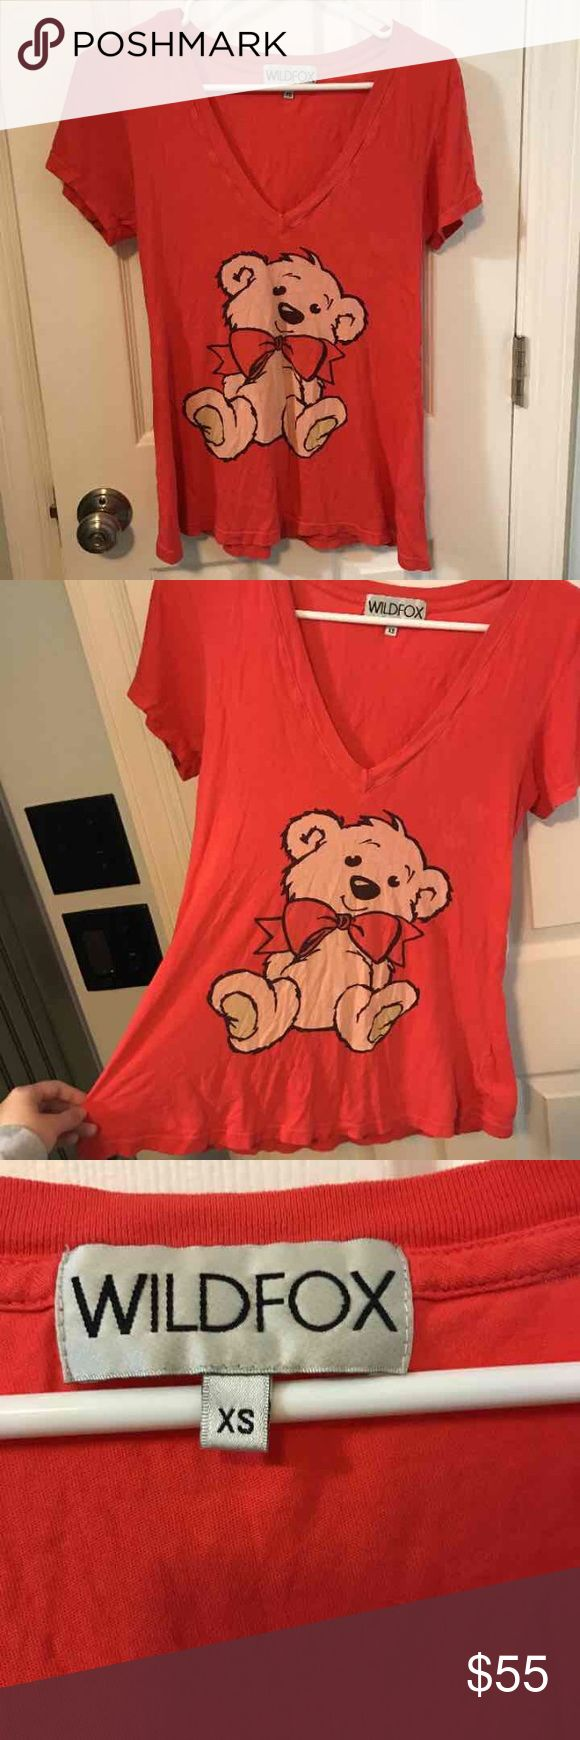 Red teddy bear shirt Red Wildfox teddy bear shirt, size extra small. Good used condition. Seam stitching in top/front area is coming undone, see last photo. Wildfox Tops Tees - Short Sleeve